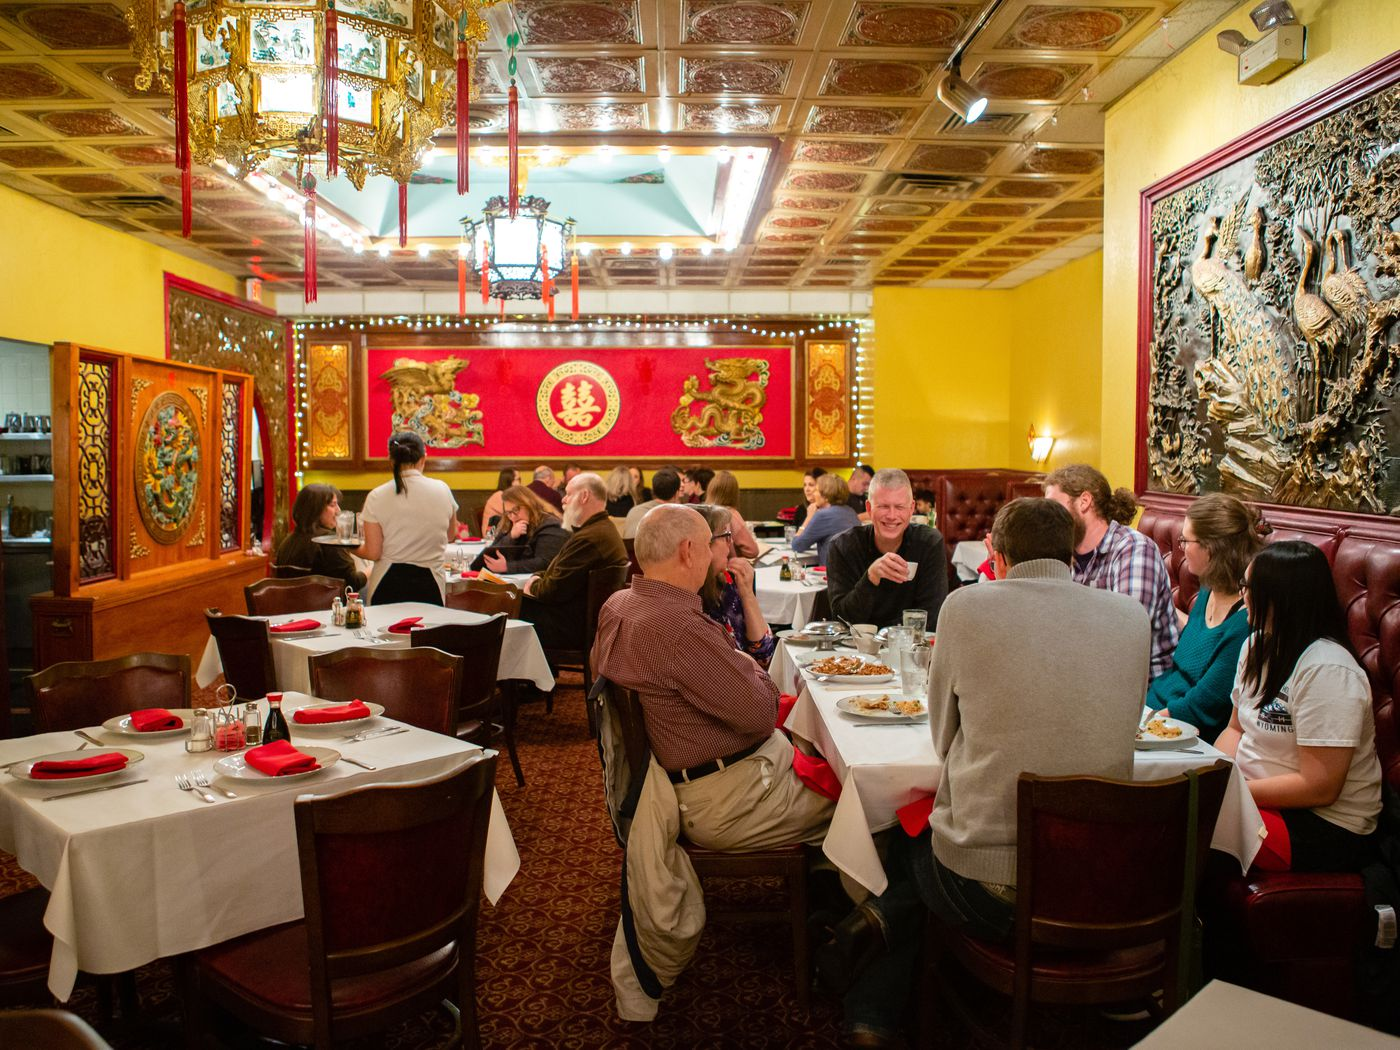 Chinese Restaurants Open On Christmas Face The Busiest Service Of